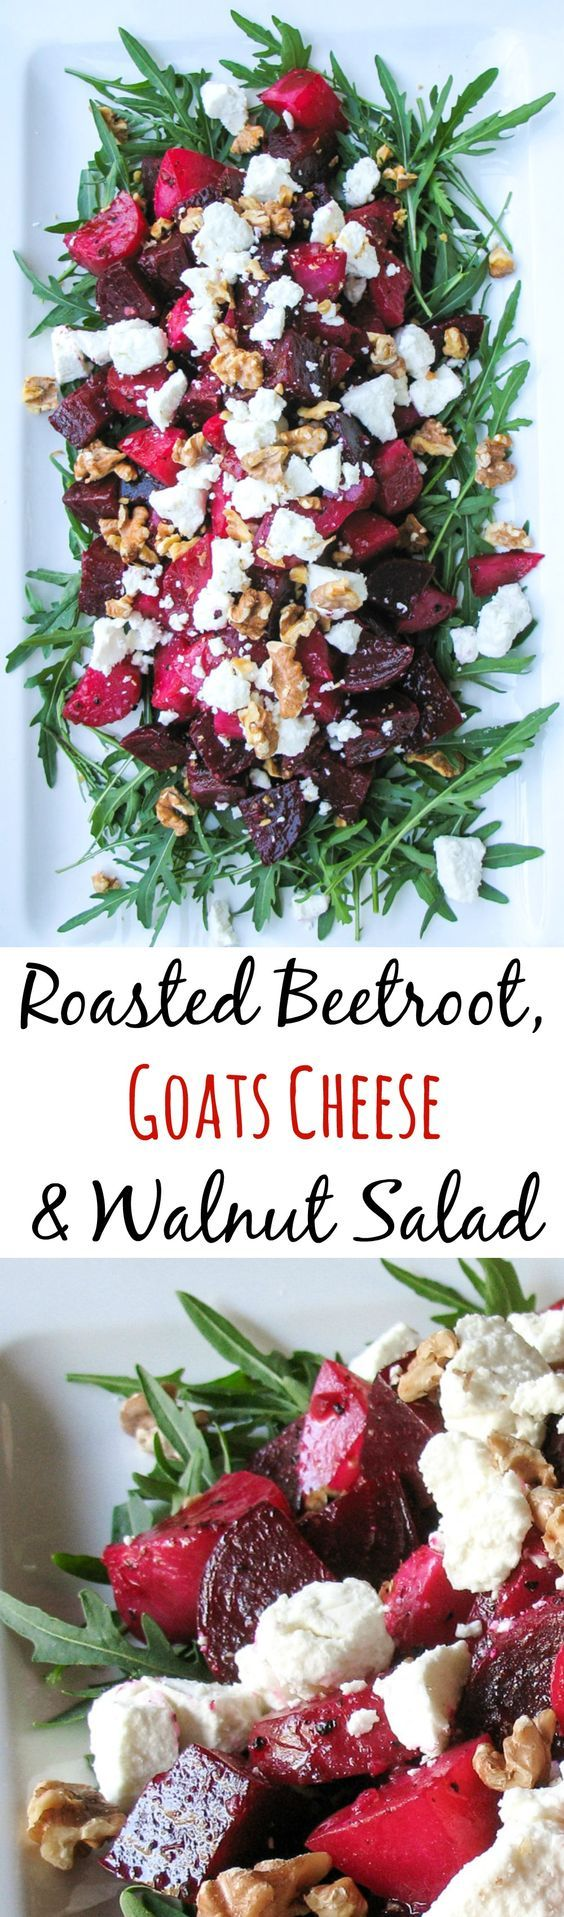 Roasted Beetroot, Goats Cheese & Walnut Salad. A Great main course salad.                                                                                                                                                                                 More